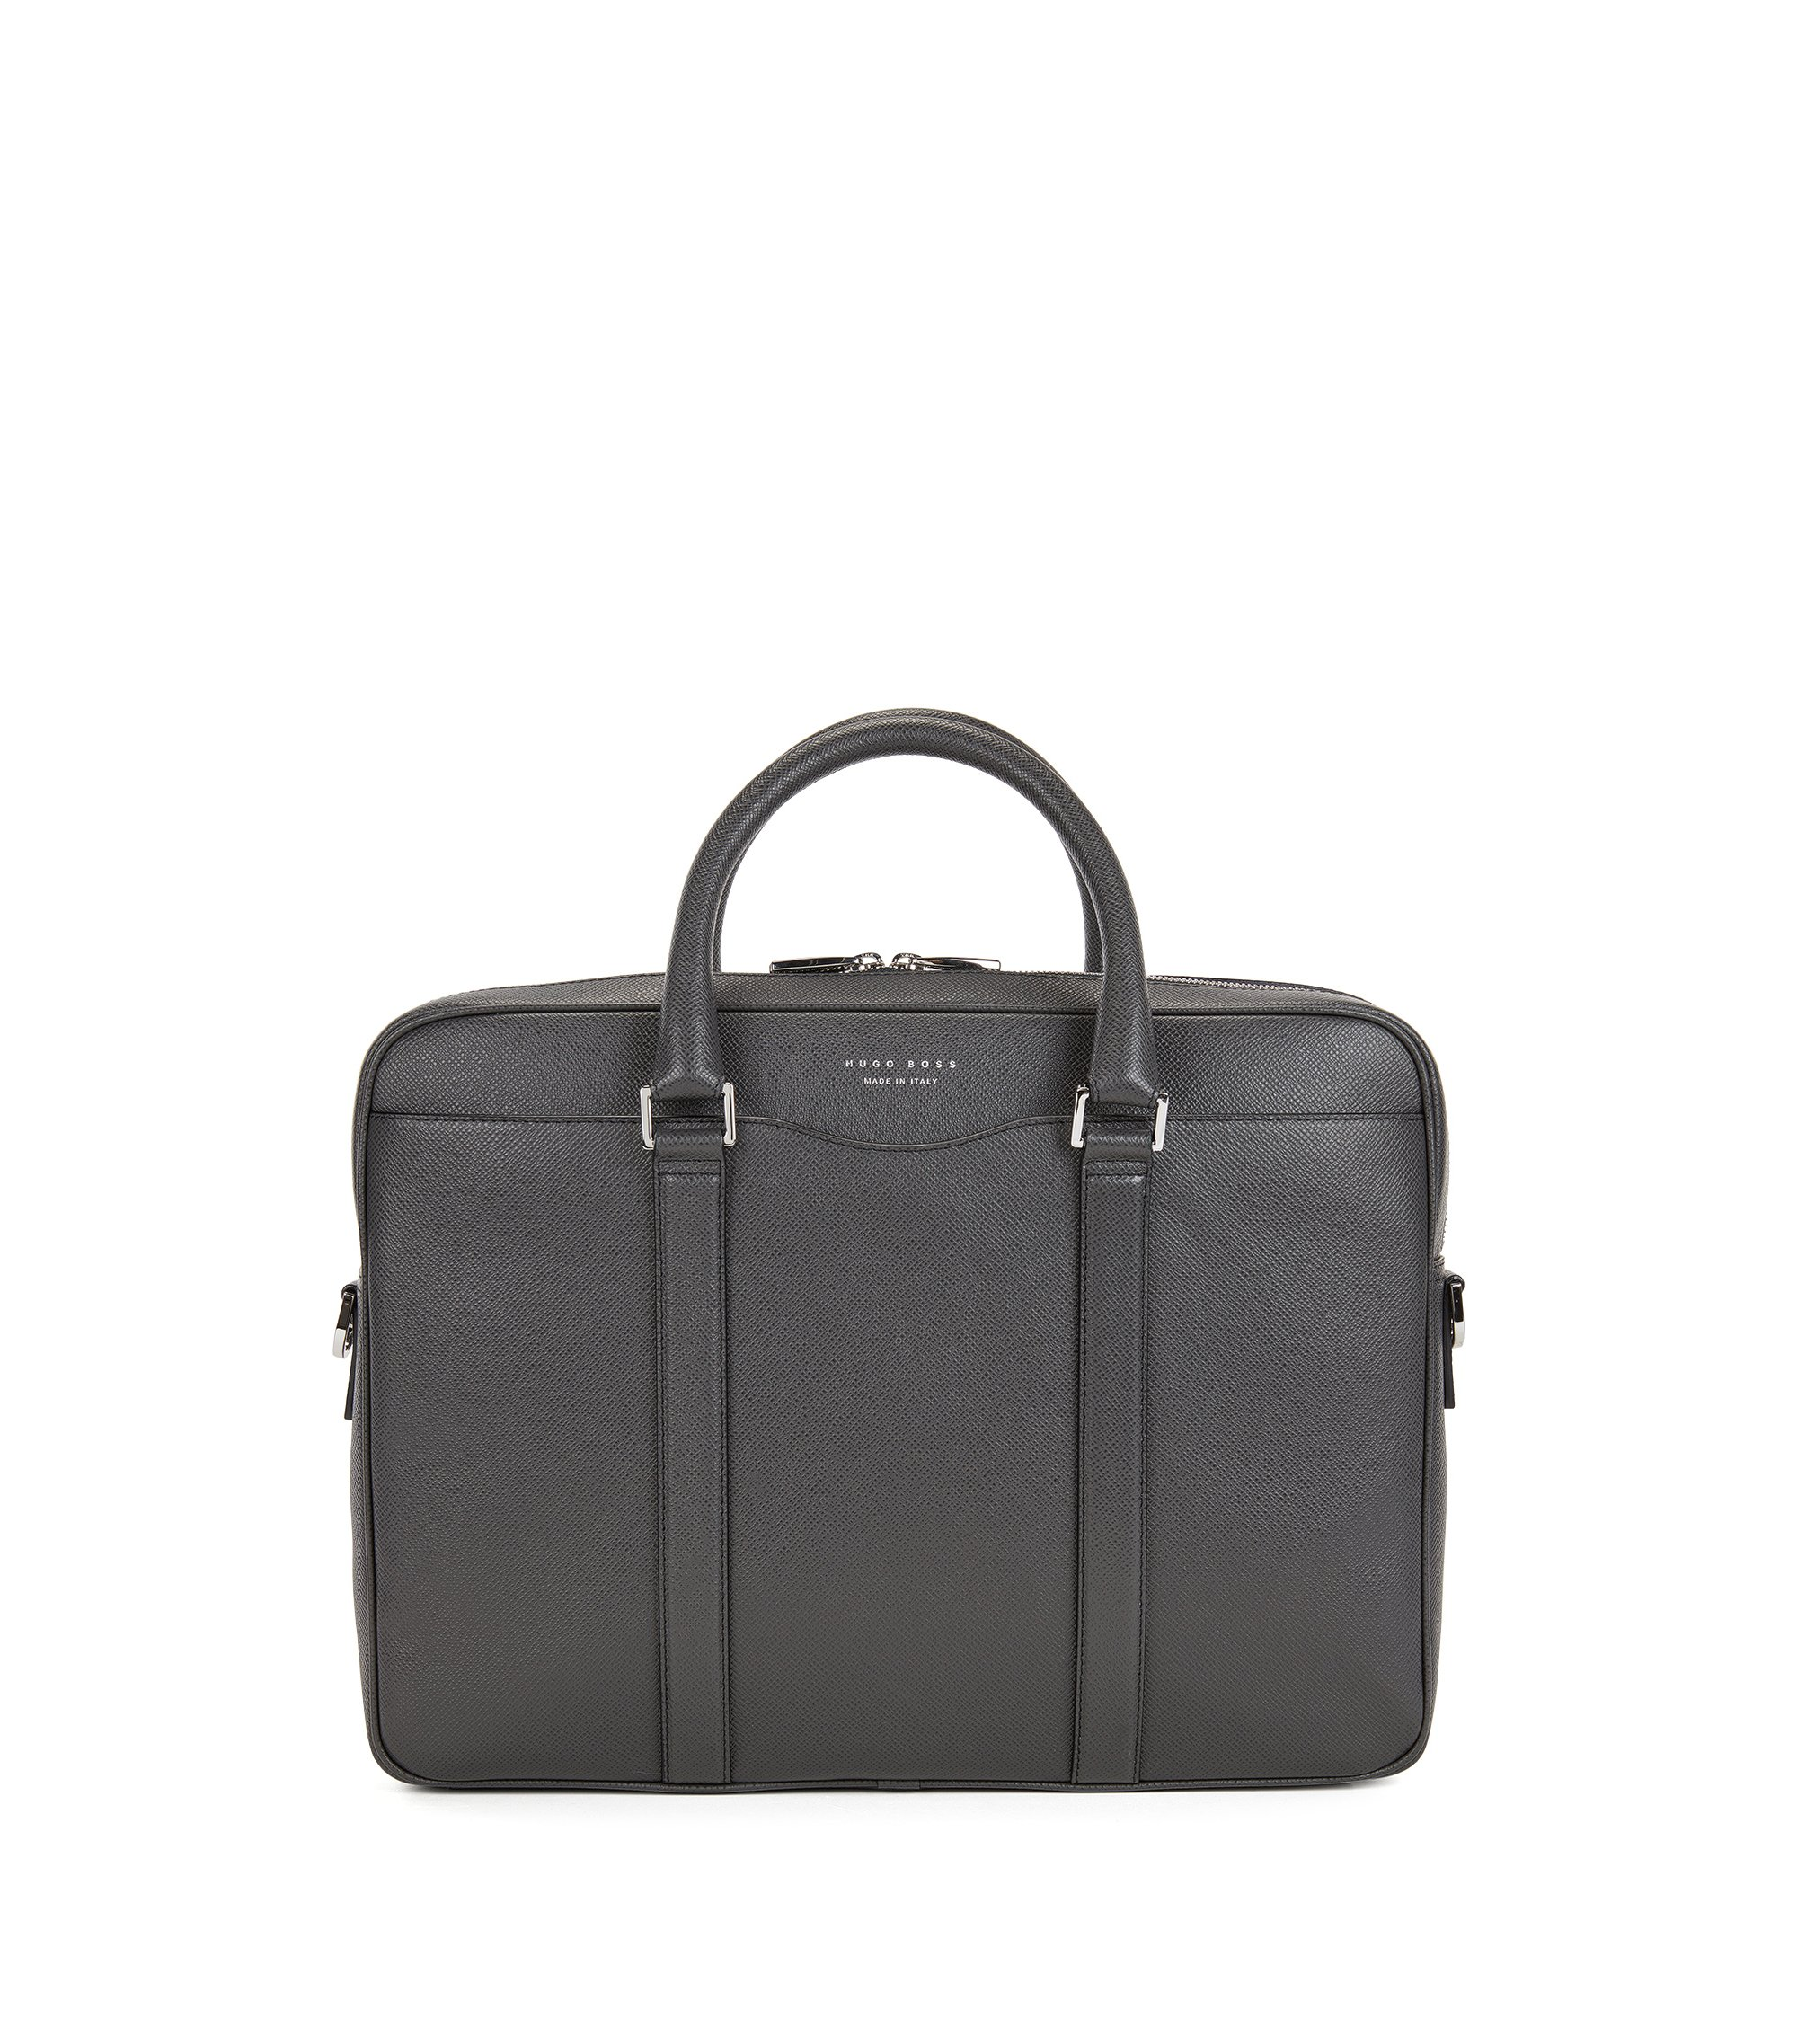 Sac de la collection Signature en cuir palmellato, Gris sombre